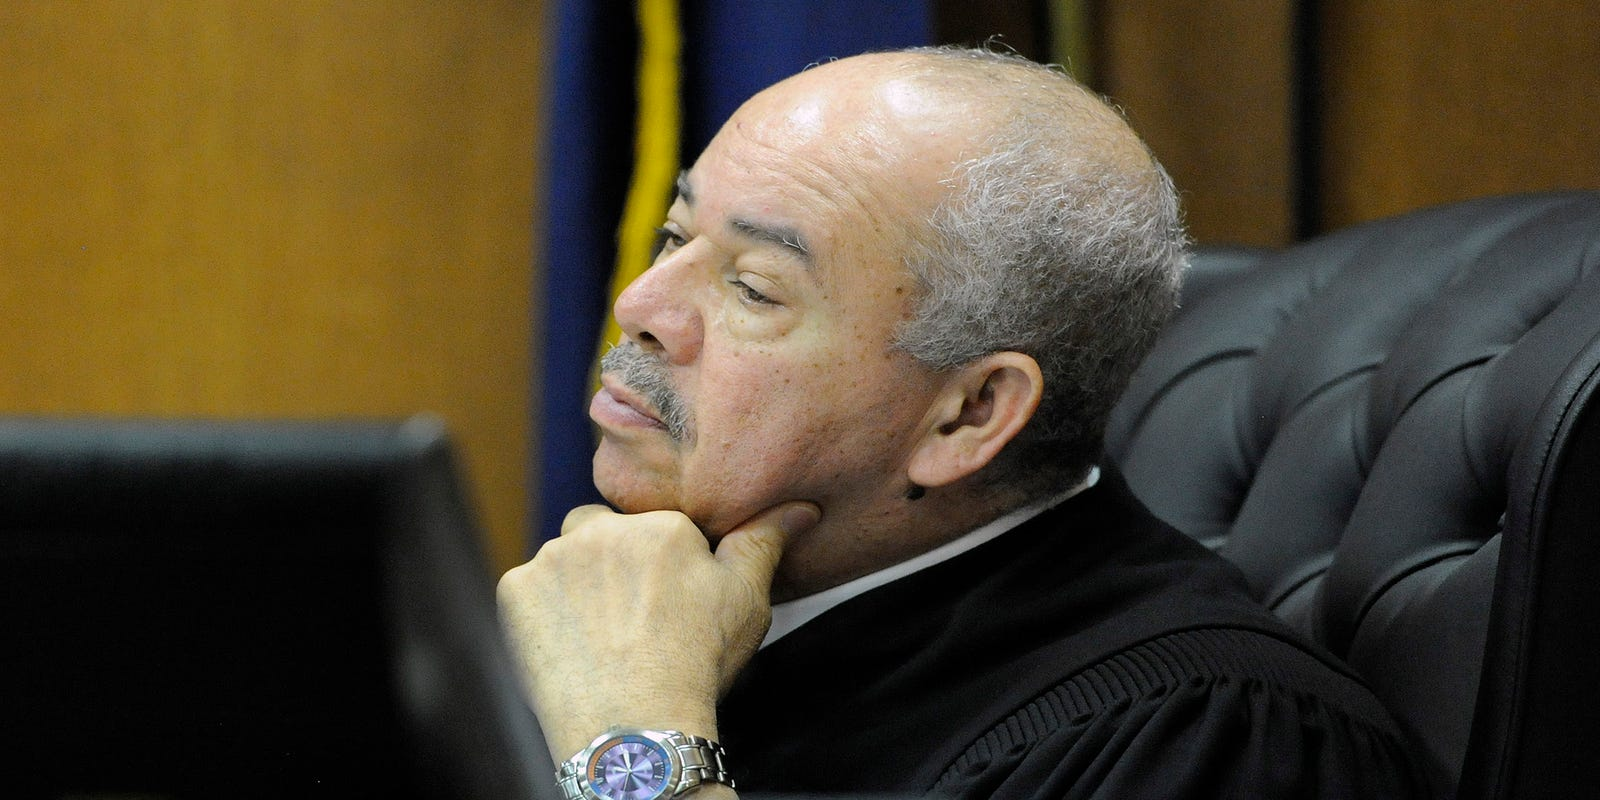 2 Wayne County judges to be honored as retirement nears